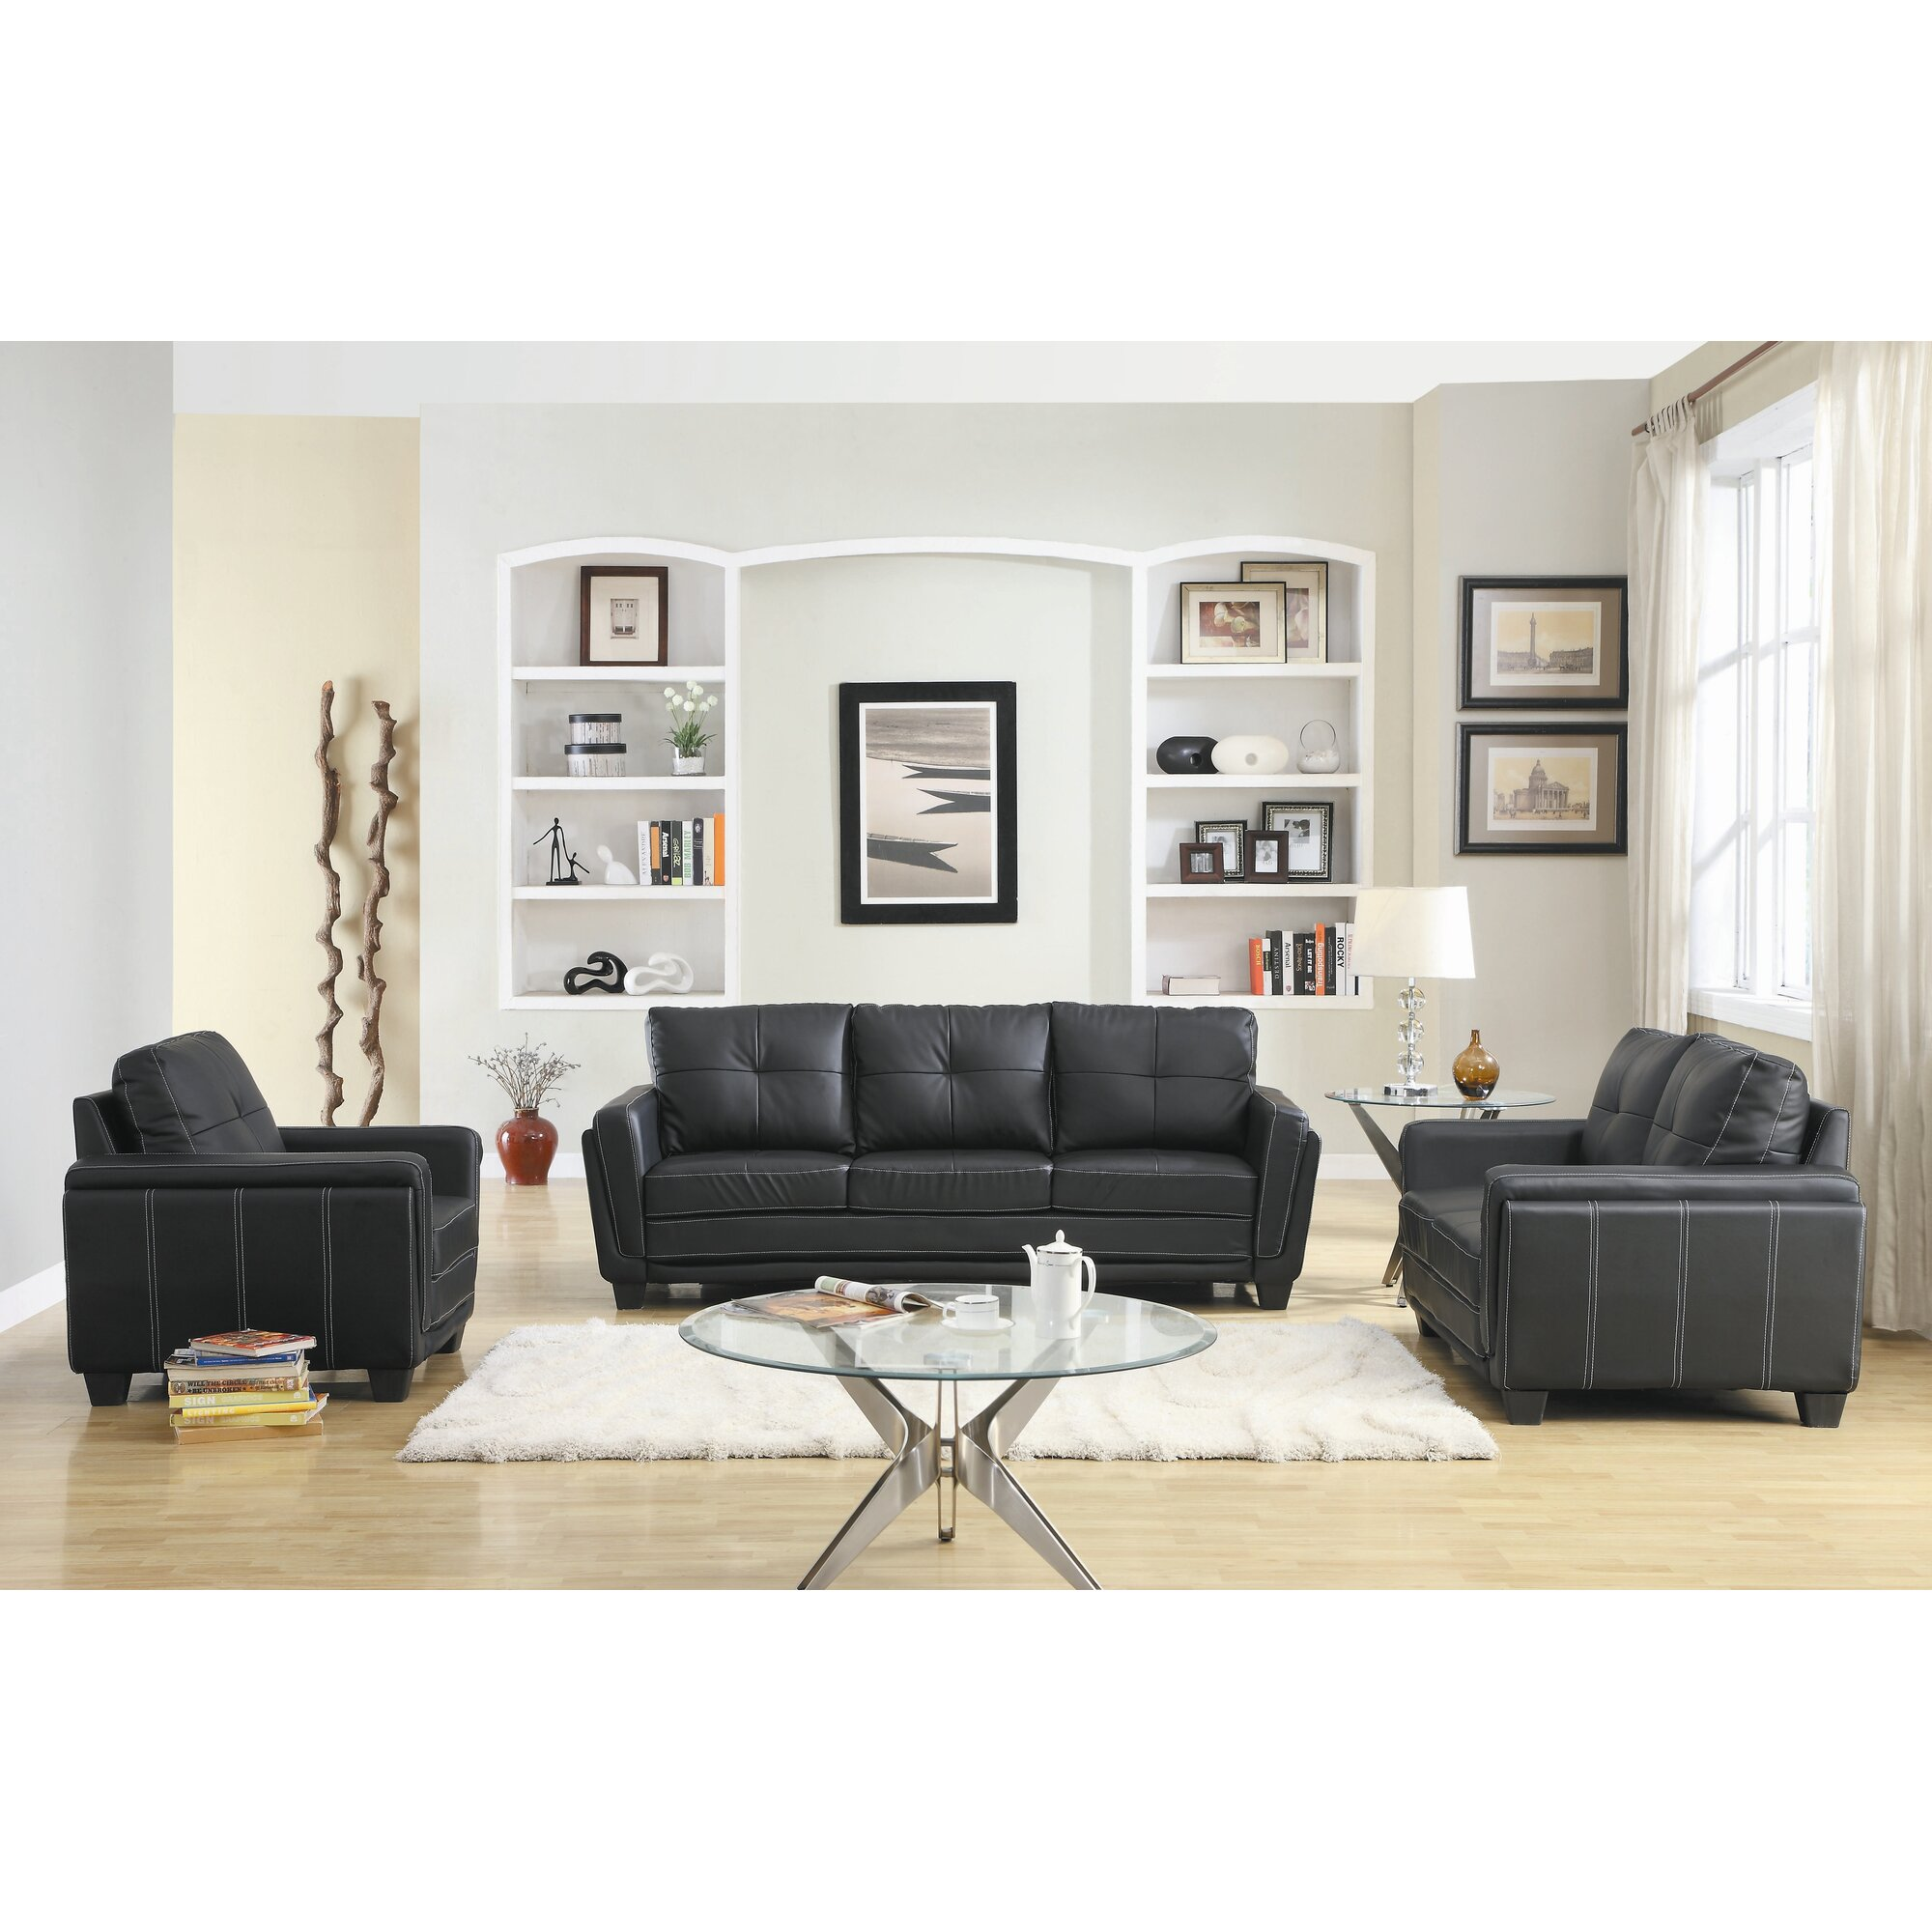 woodhaven living room furniture. Woodhaven Hill Dwyer Sofa Reviews Wayfair  Living Room Furniture safemarket us